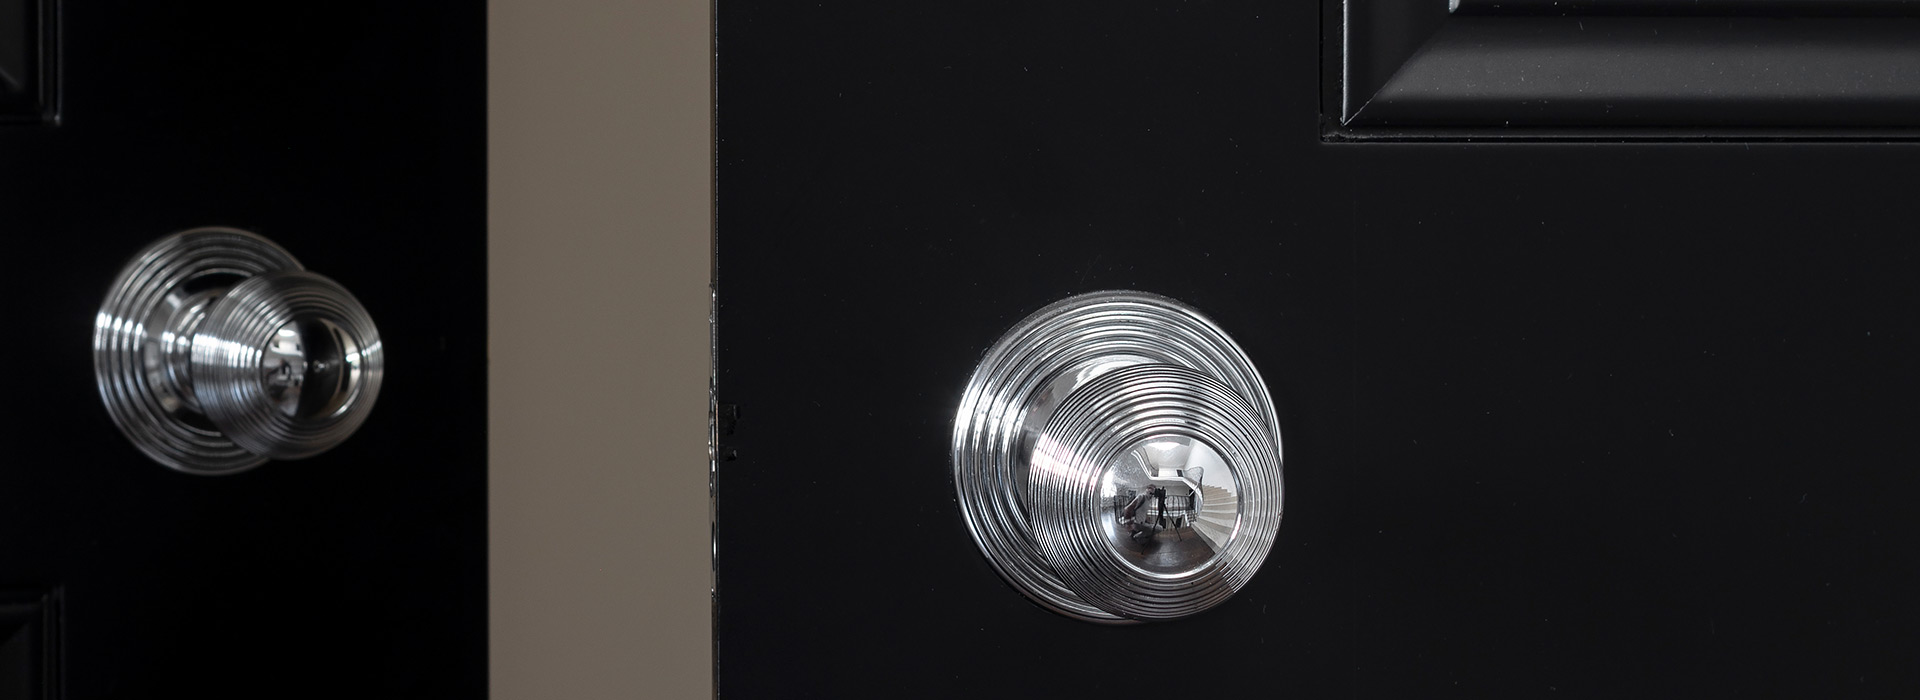 Polished chrome finish beehive door knobs